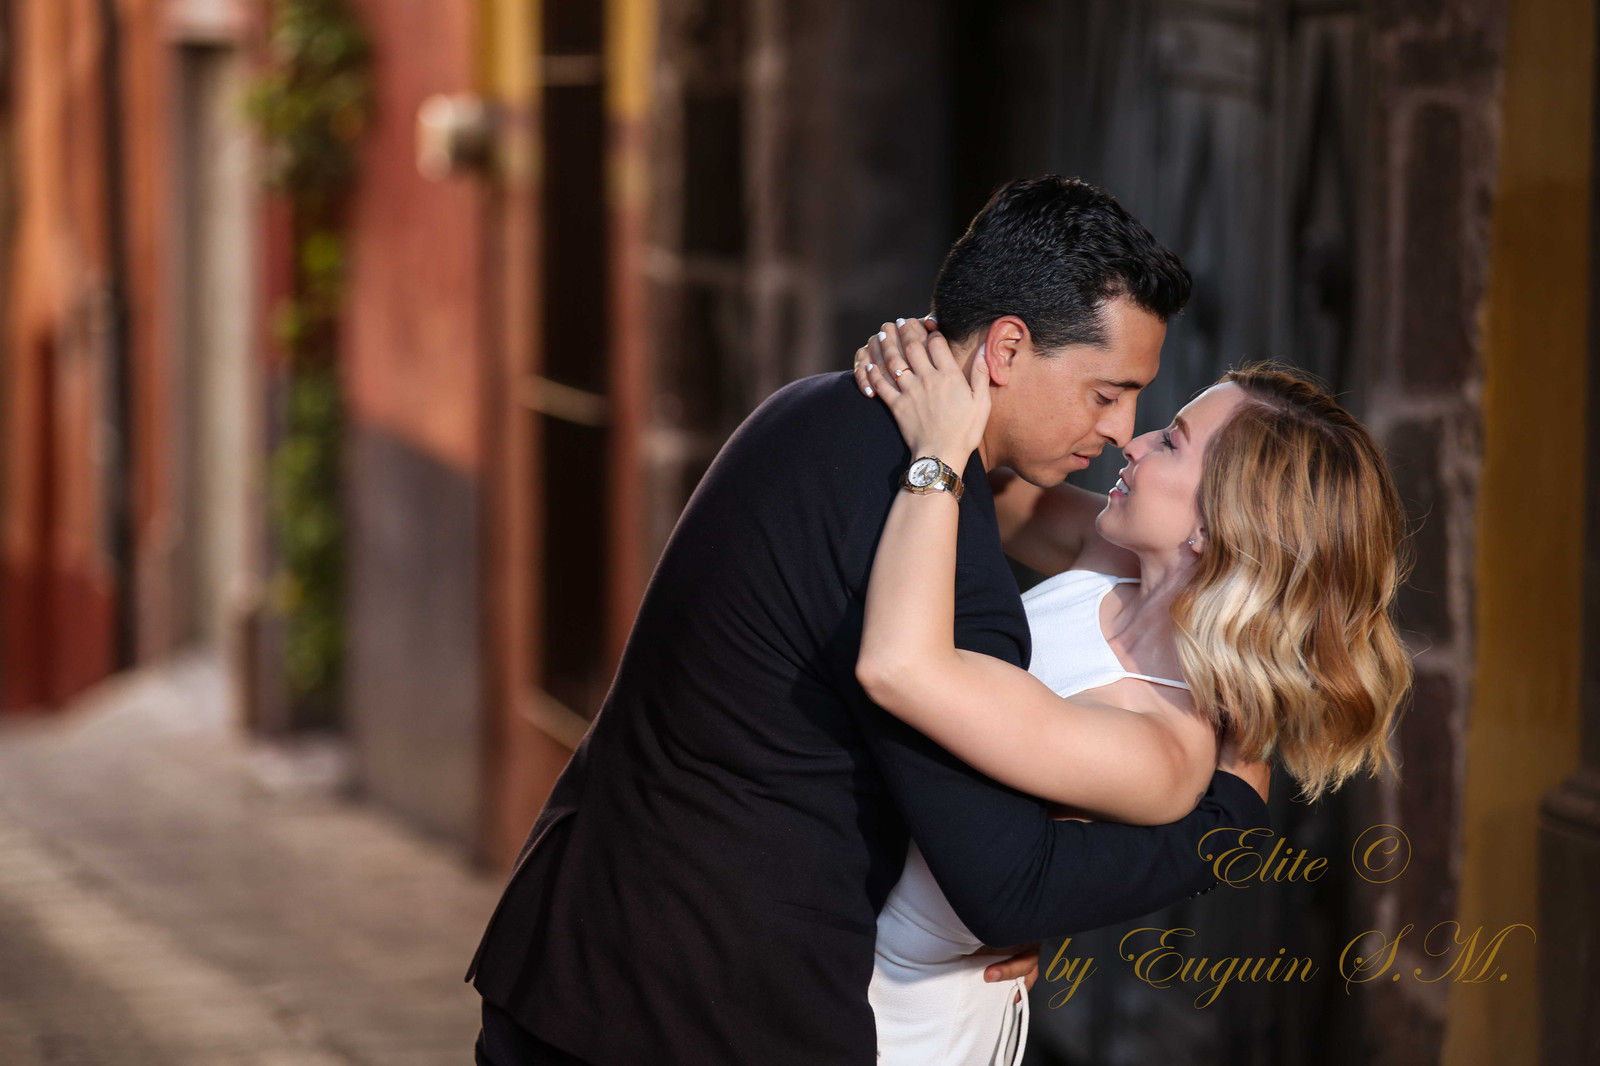 Dating i san miguel de allende